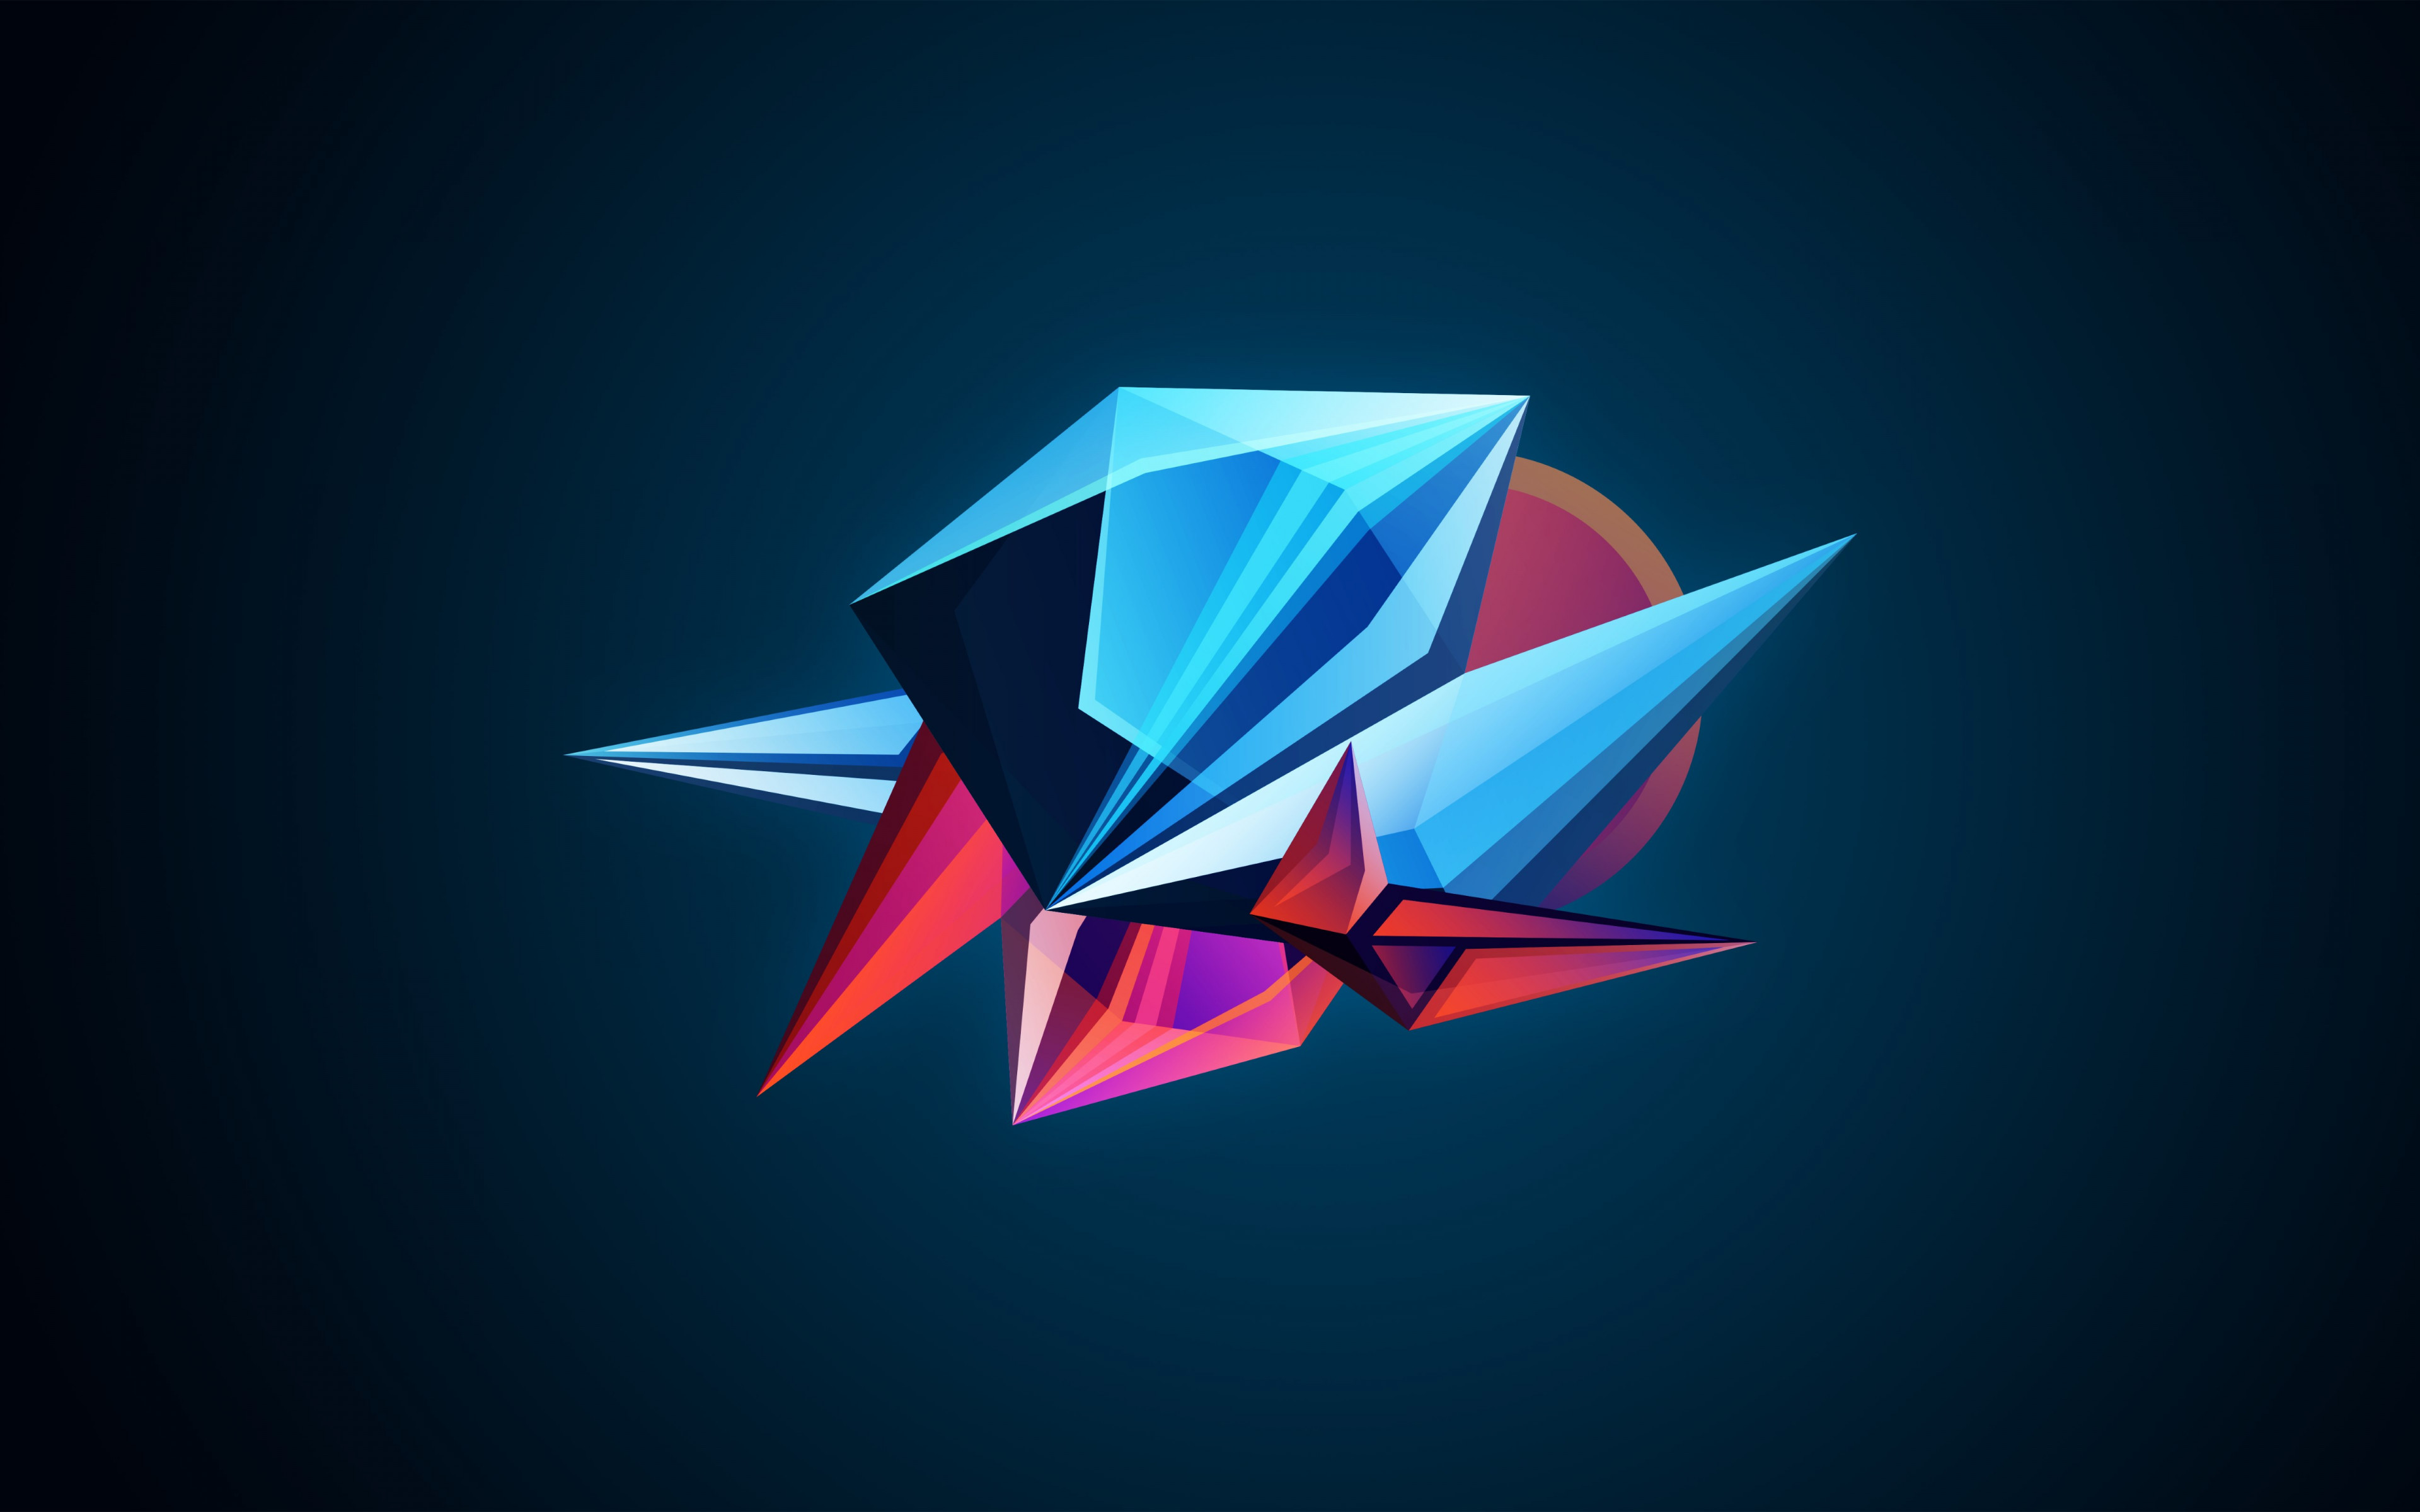 Abstract 3D shapes wallpaper 3840x2400